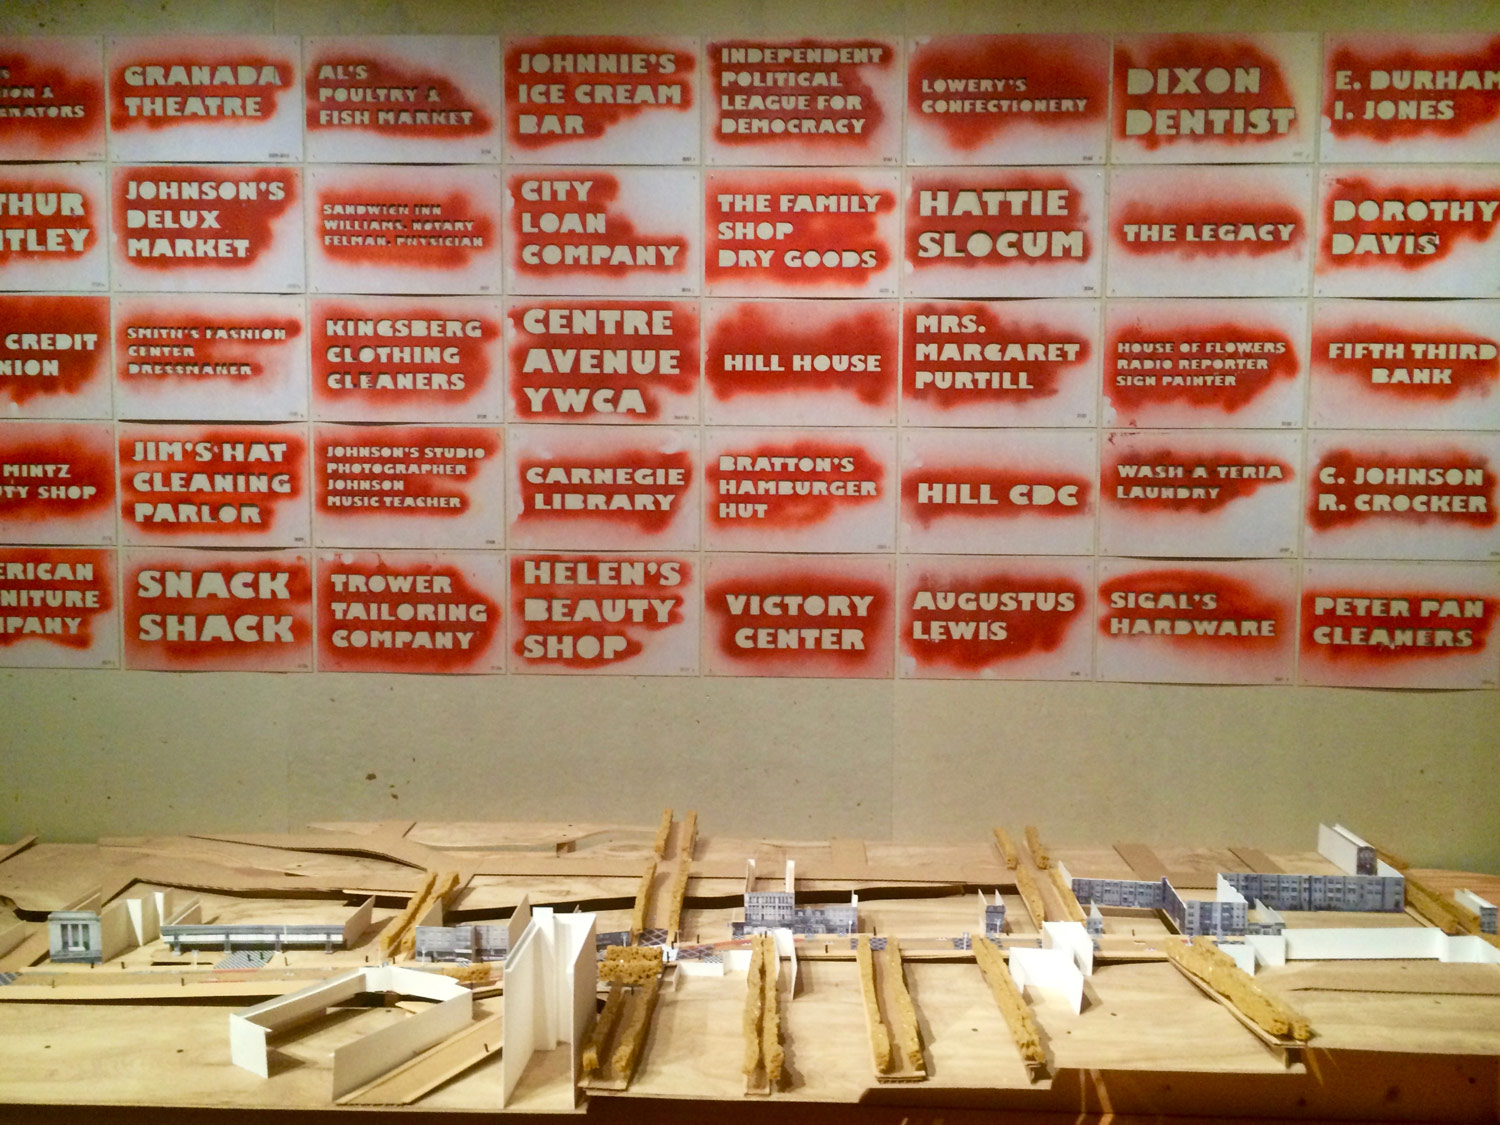 Studio for Spatial Practice and Hood Design's Hill District Greenprint - Center Avenue model and stencils of historic business names, featured in the Cooper Hewitt's exhibition  By the People: Designing A Better America .